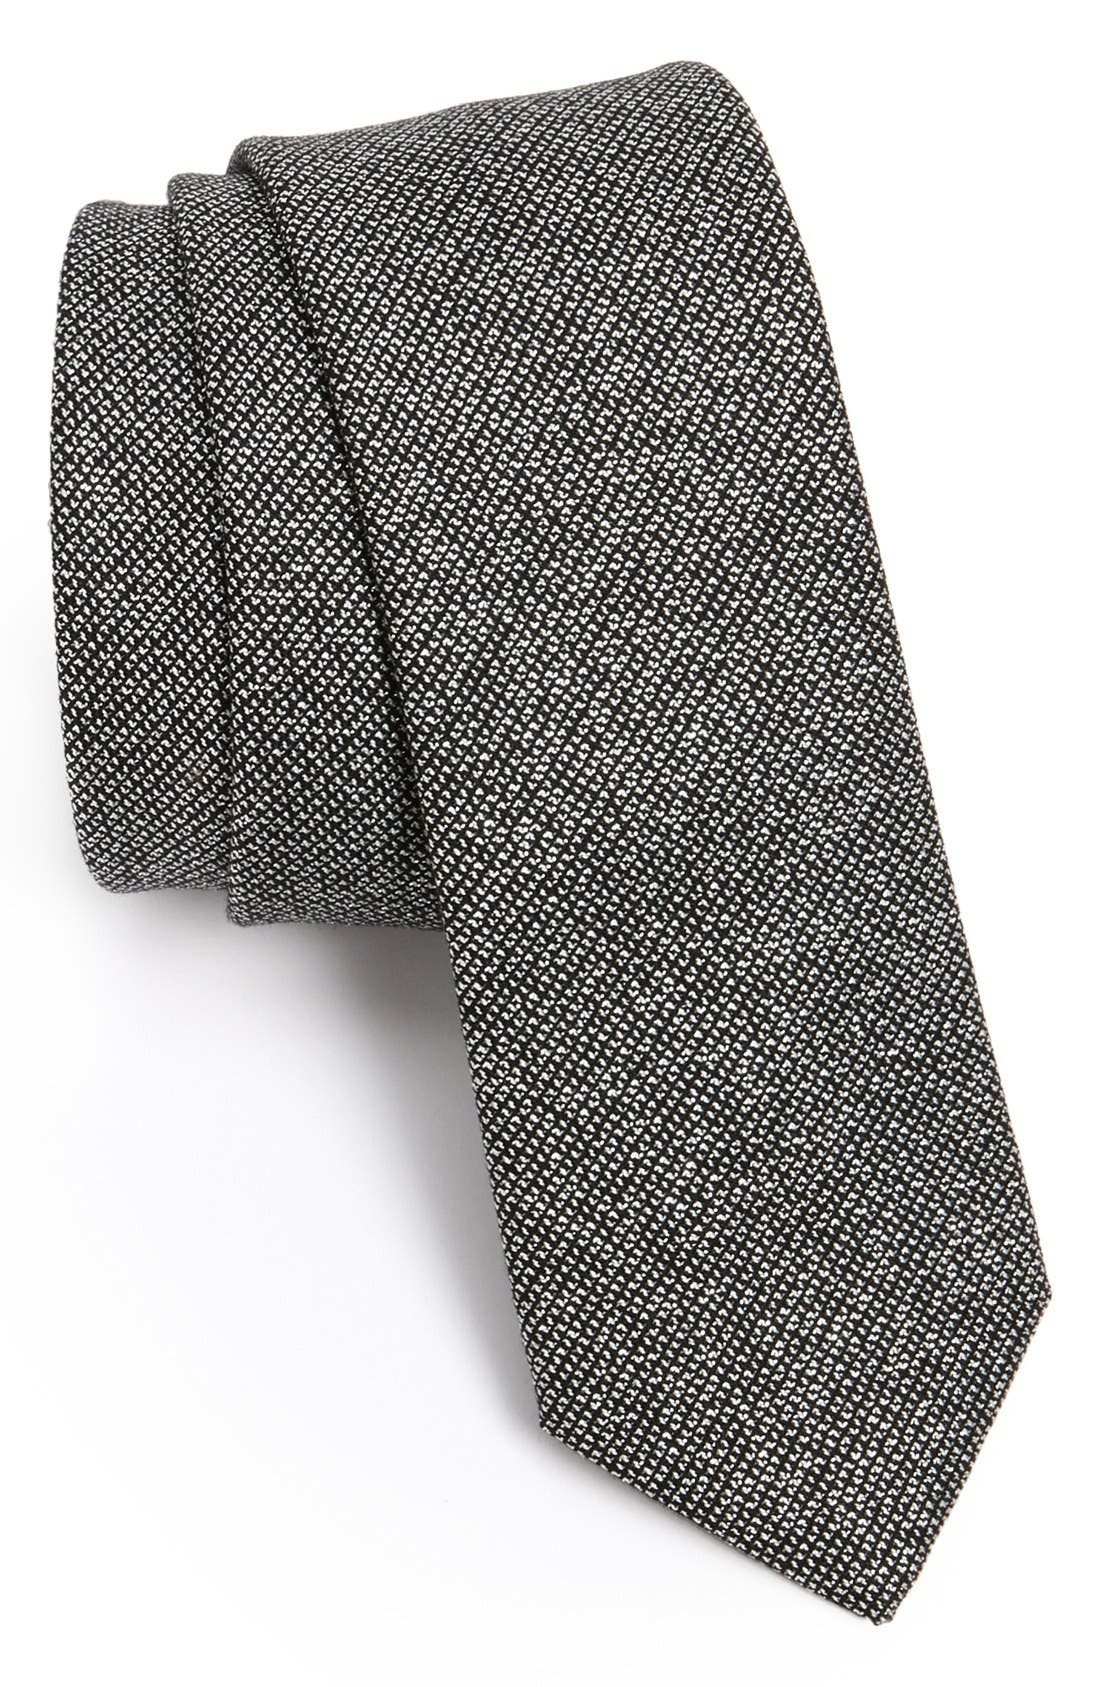 Alternate Image 1 Selected - Lanvin Woven Tie